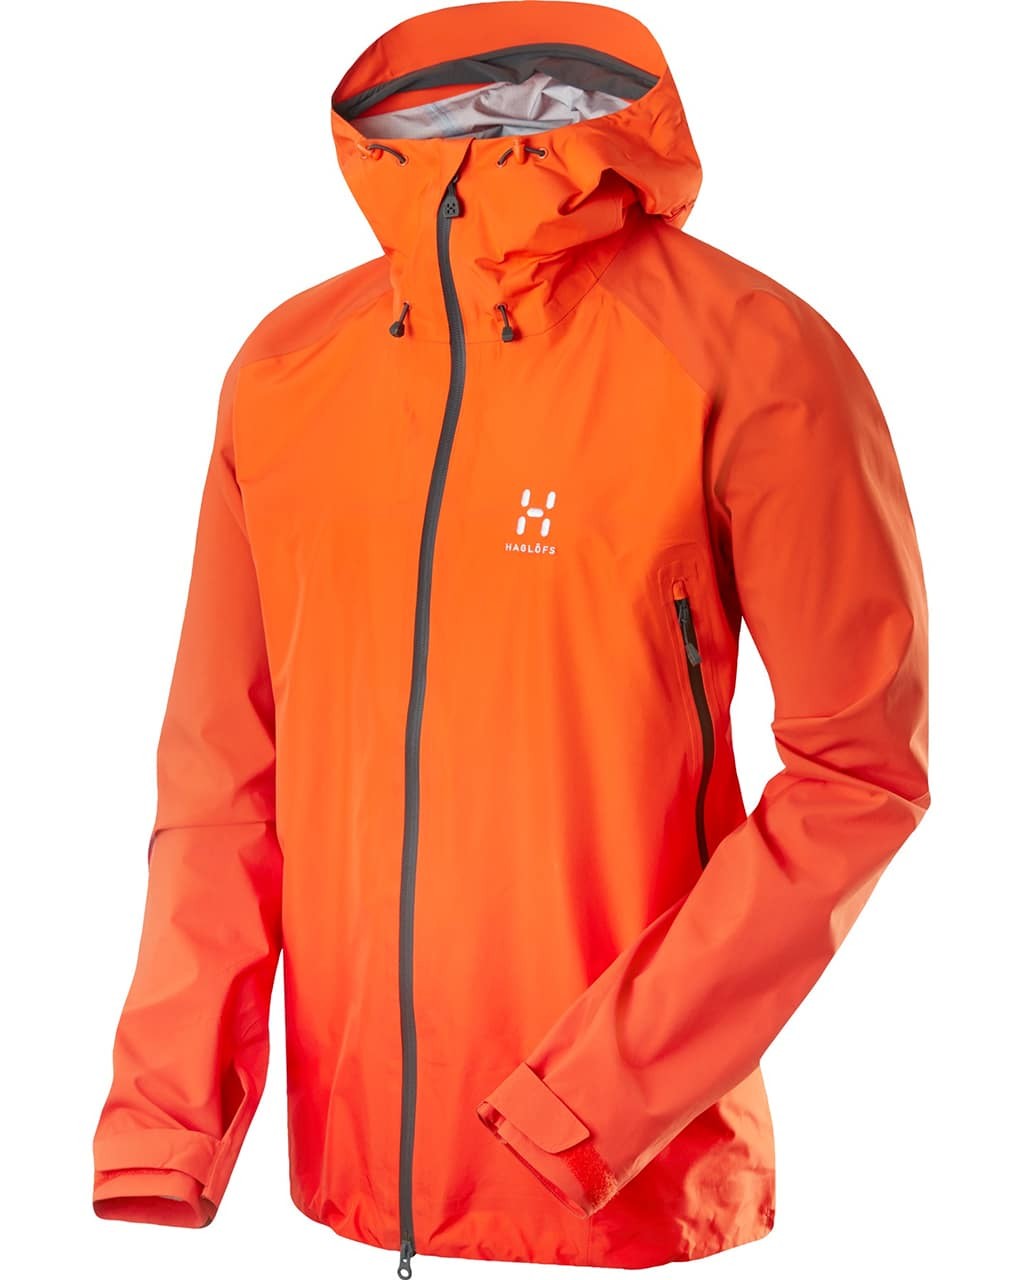 Haglöfs Roc Spirit Jacket